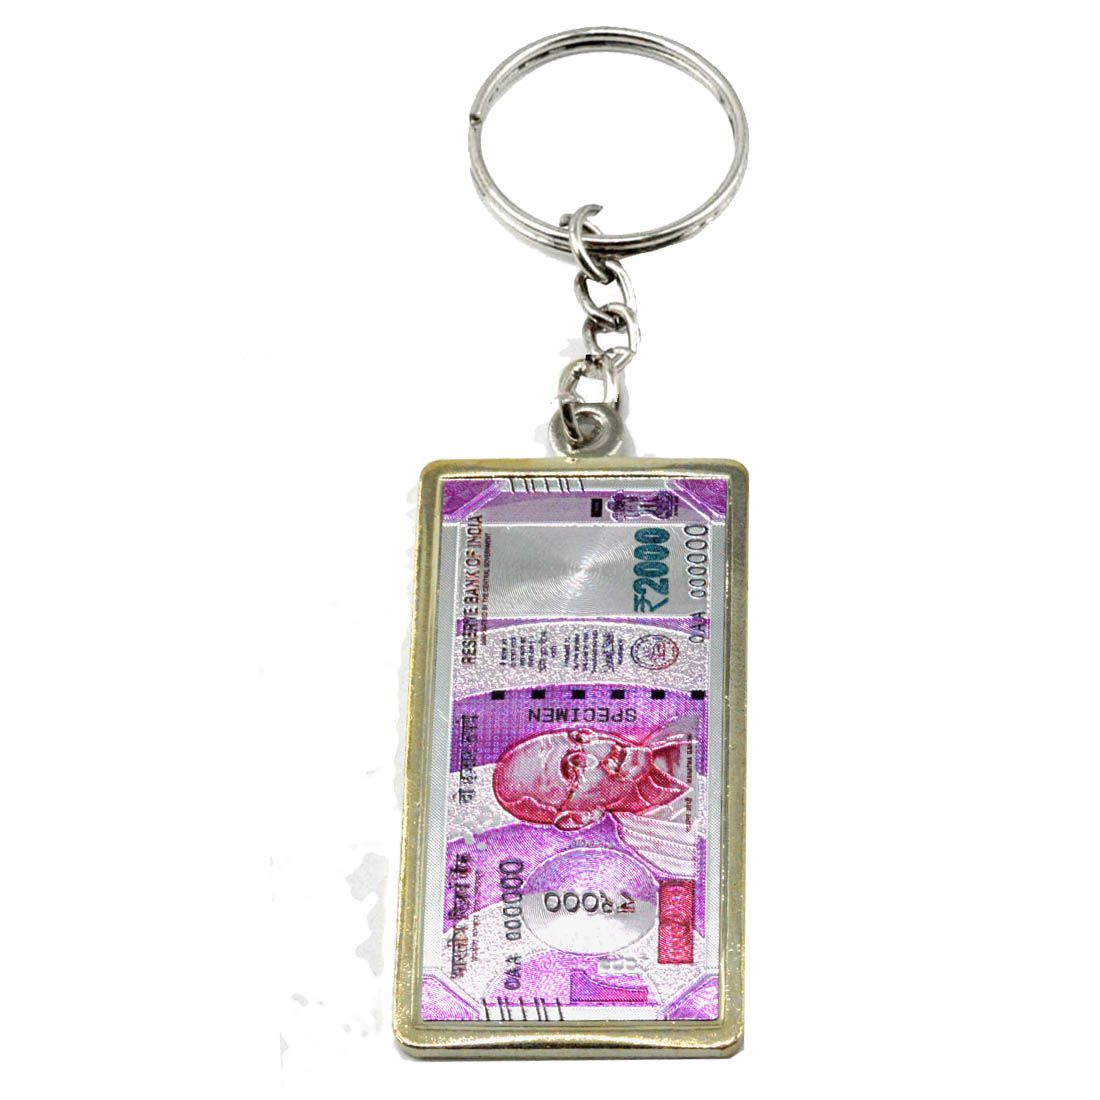 Faynci Indian 2000 rupees Currency Note High Quality Metal collectible Key Chain For Car Bike Bags